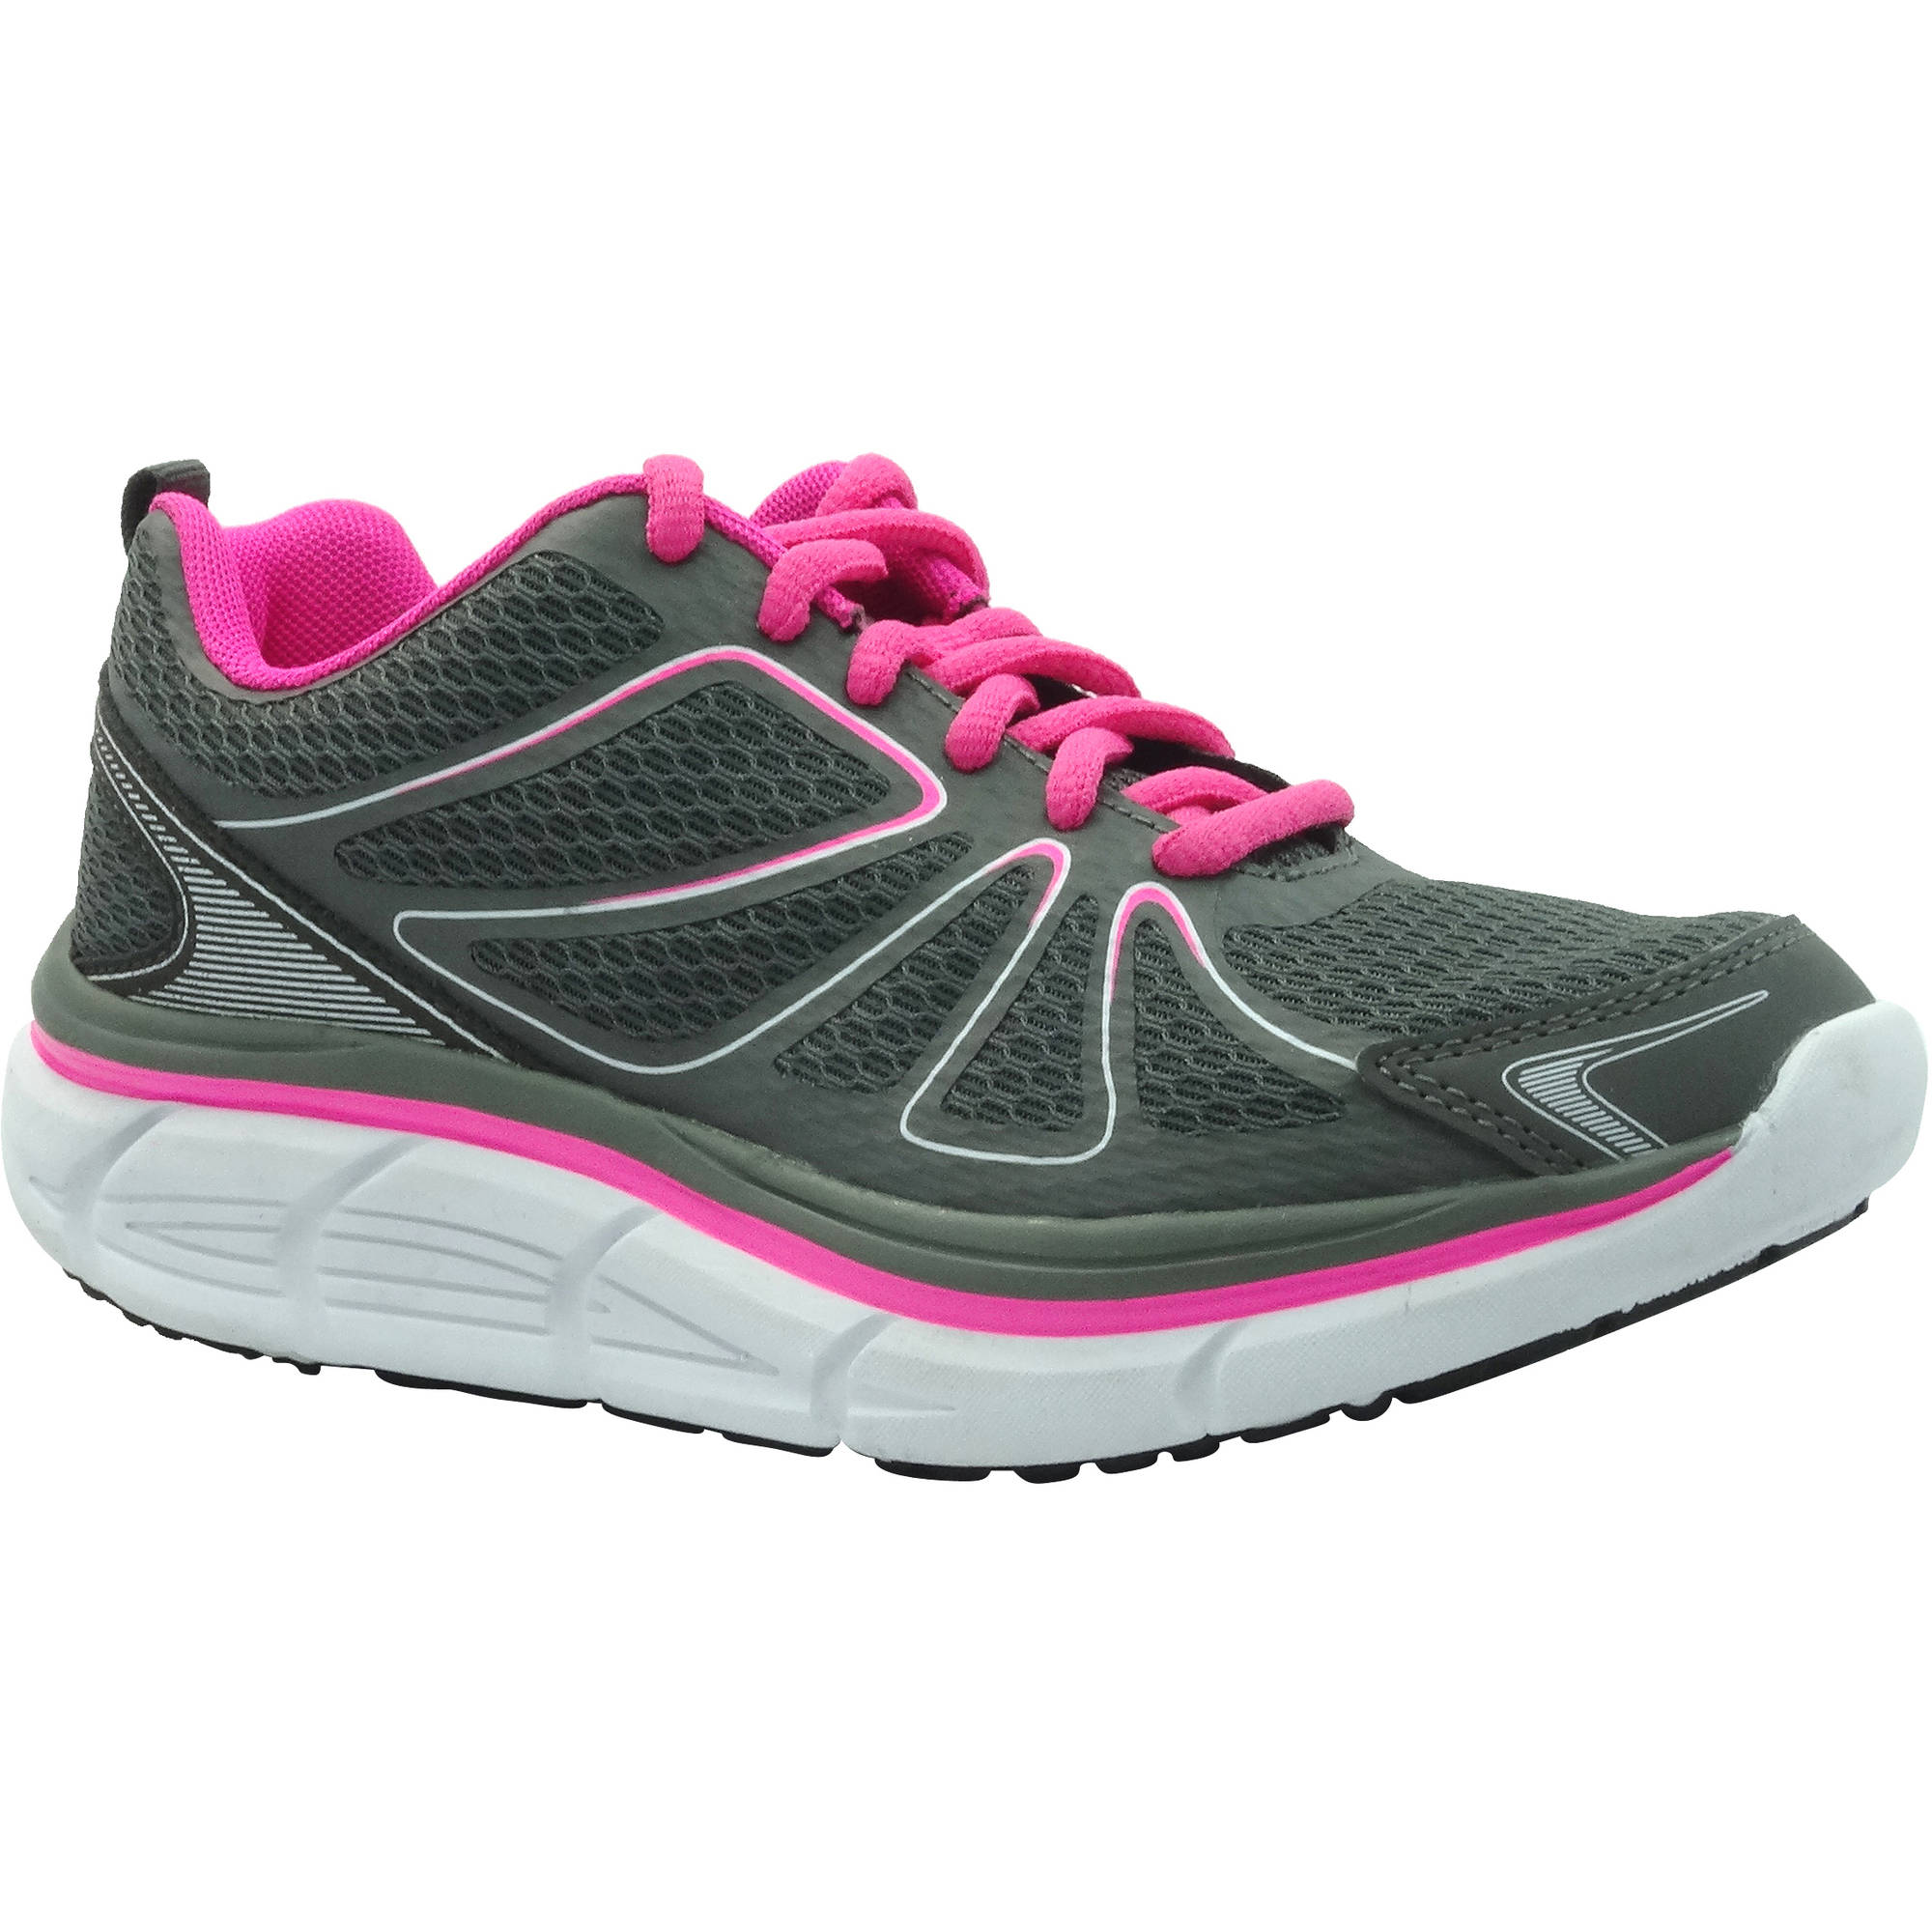 Danskin Now Womens' Max Cushion Running Shoe